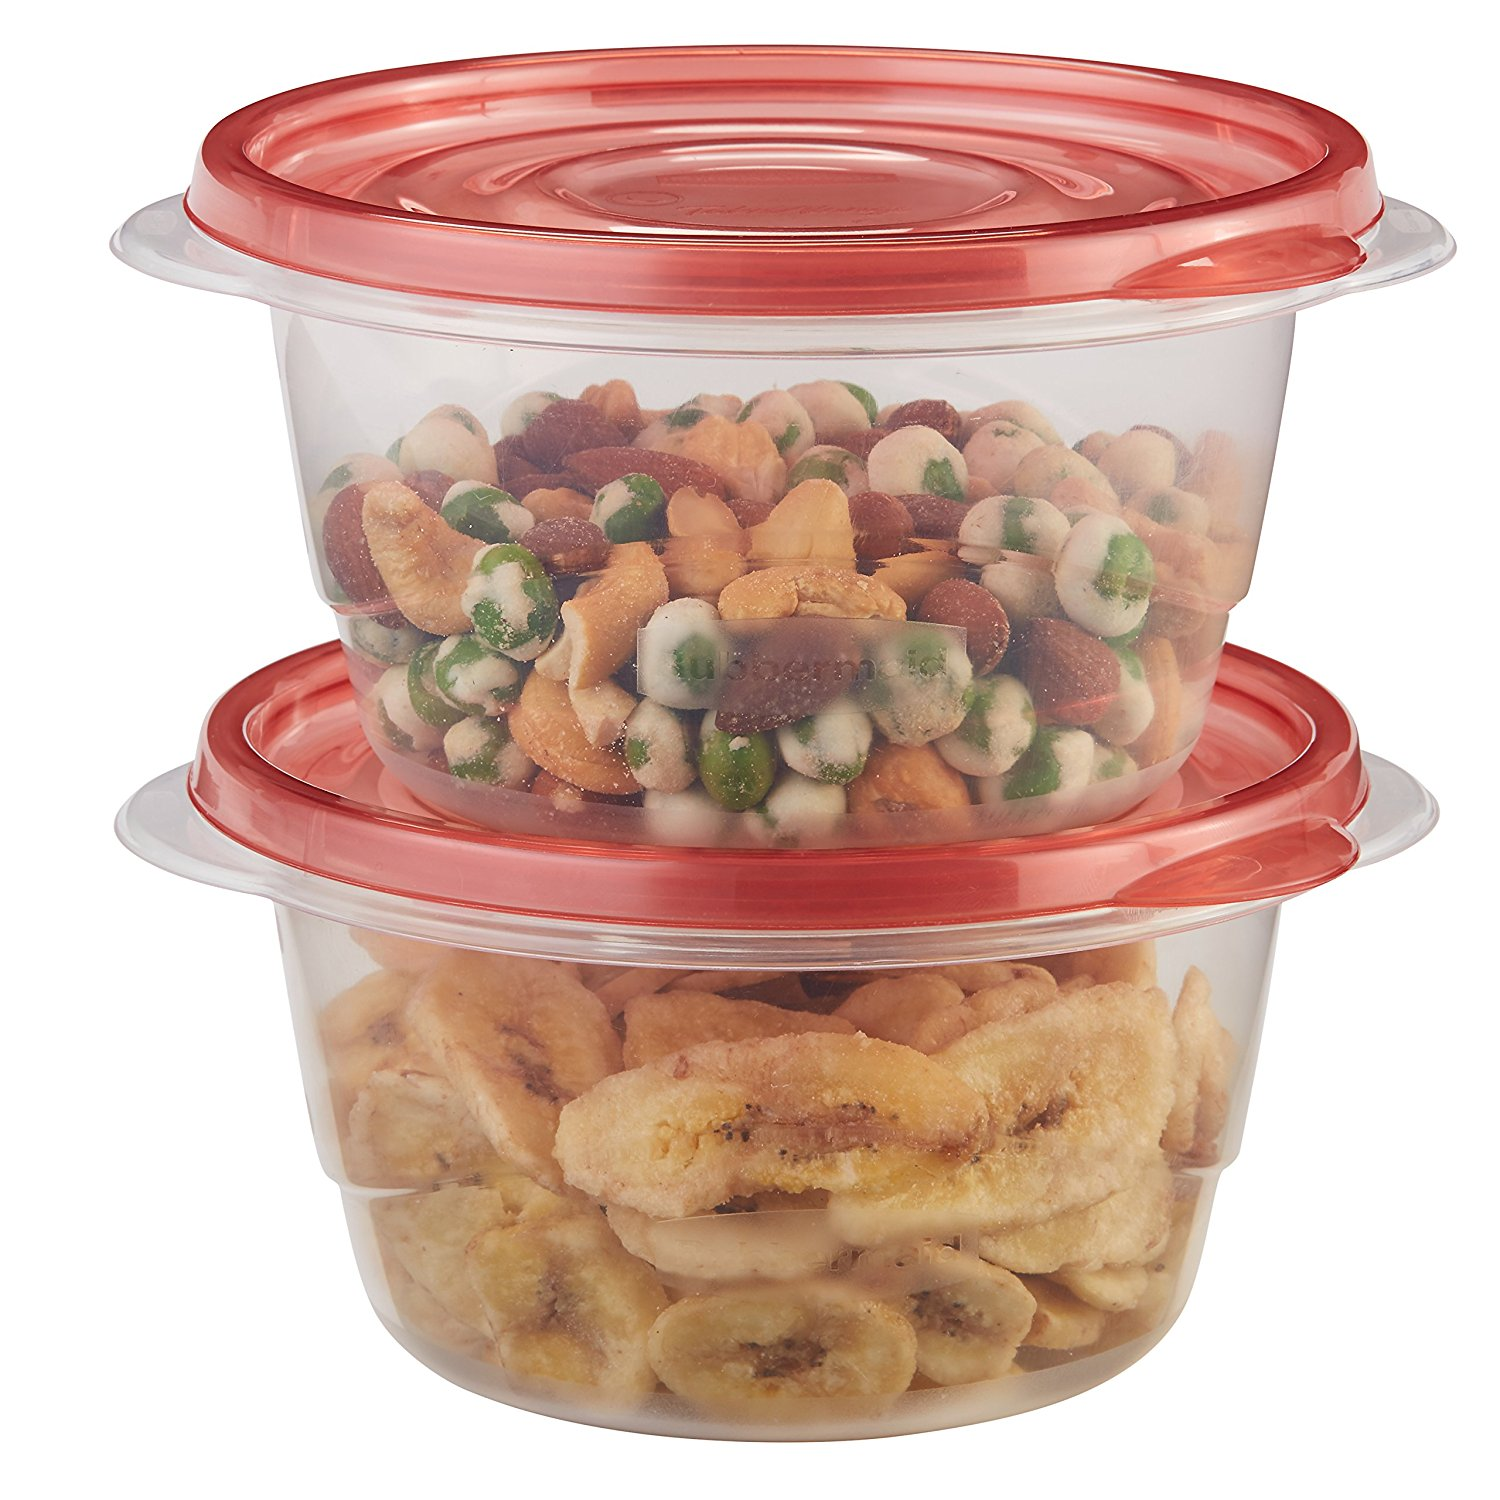 Takealongs 3 2 Cup Small Bowls Food Storage Container Pack New Quick Click Seal With An Improved Lid Clicks In Place Ensuring Contents Are Secure